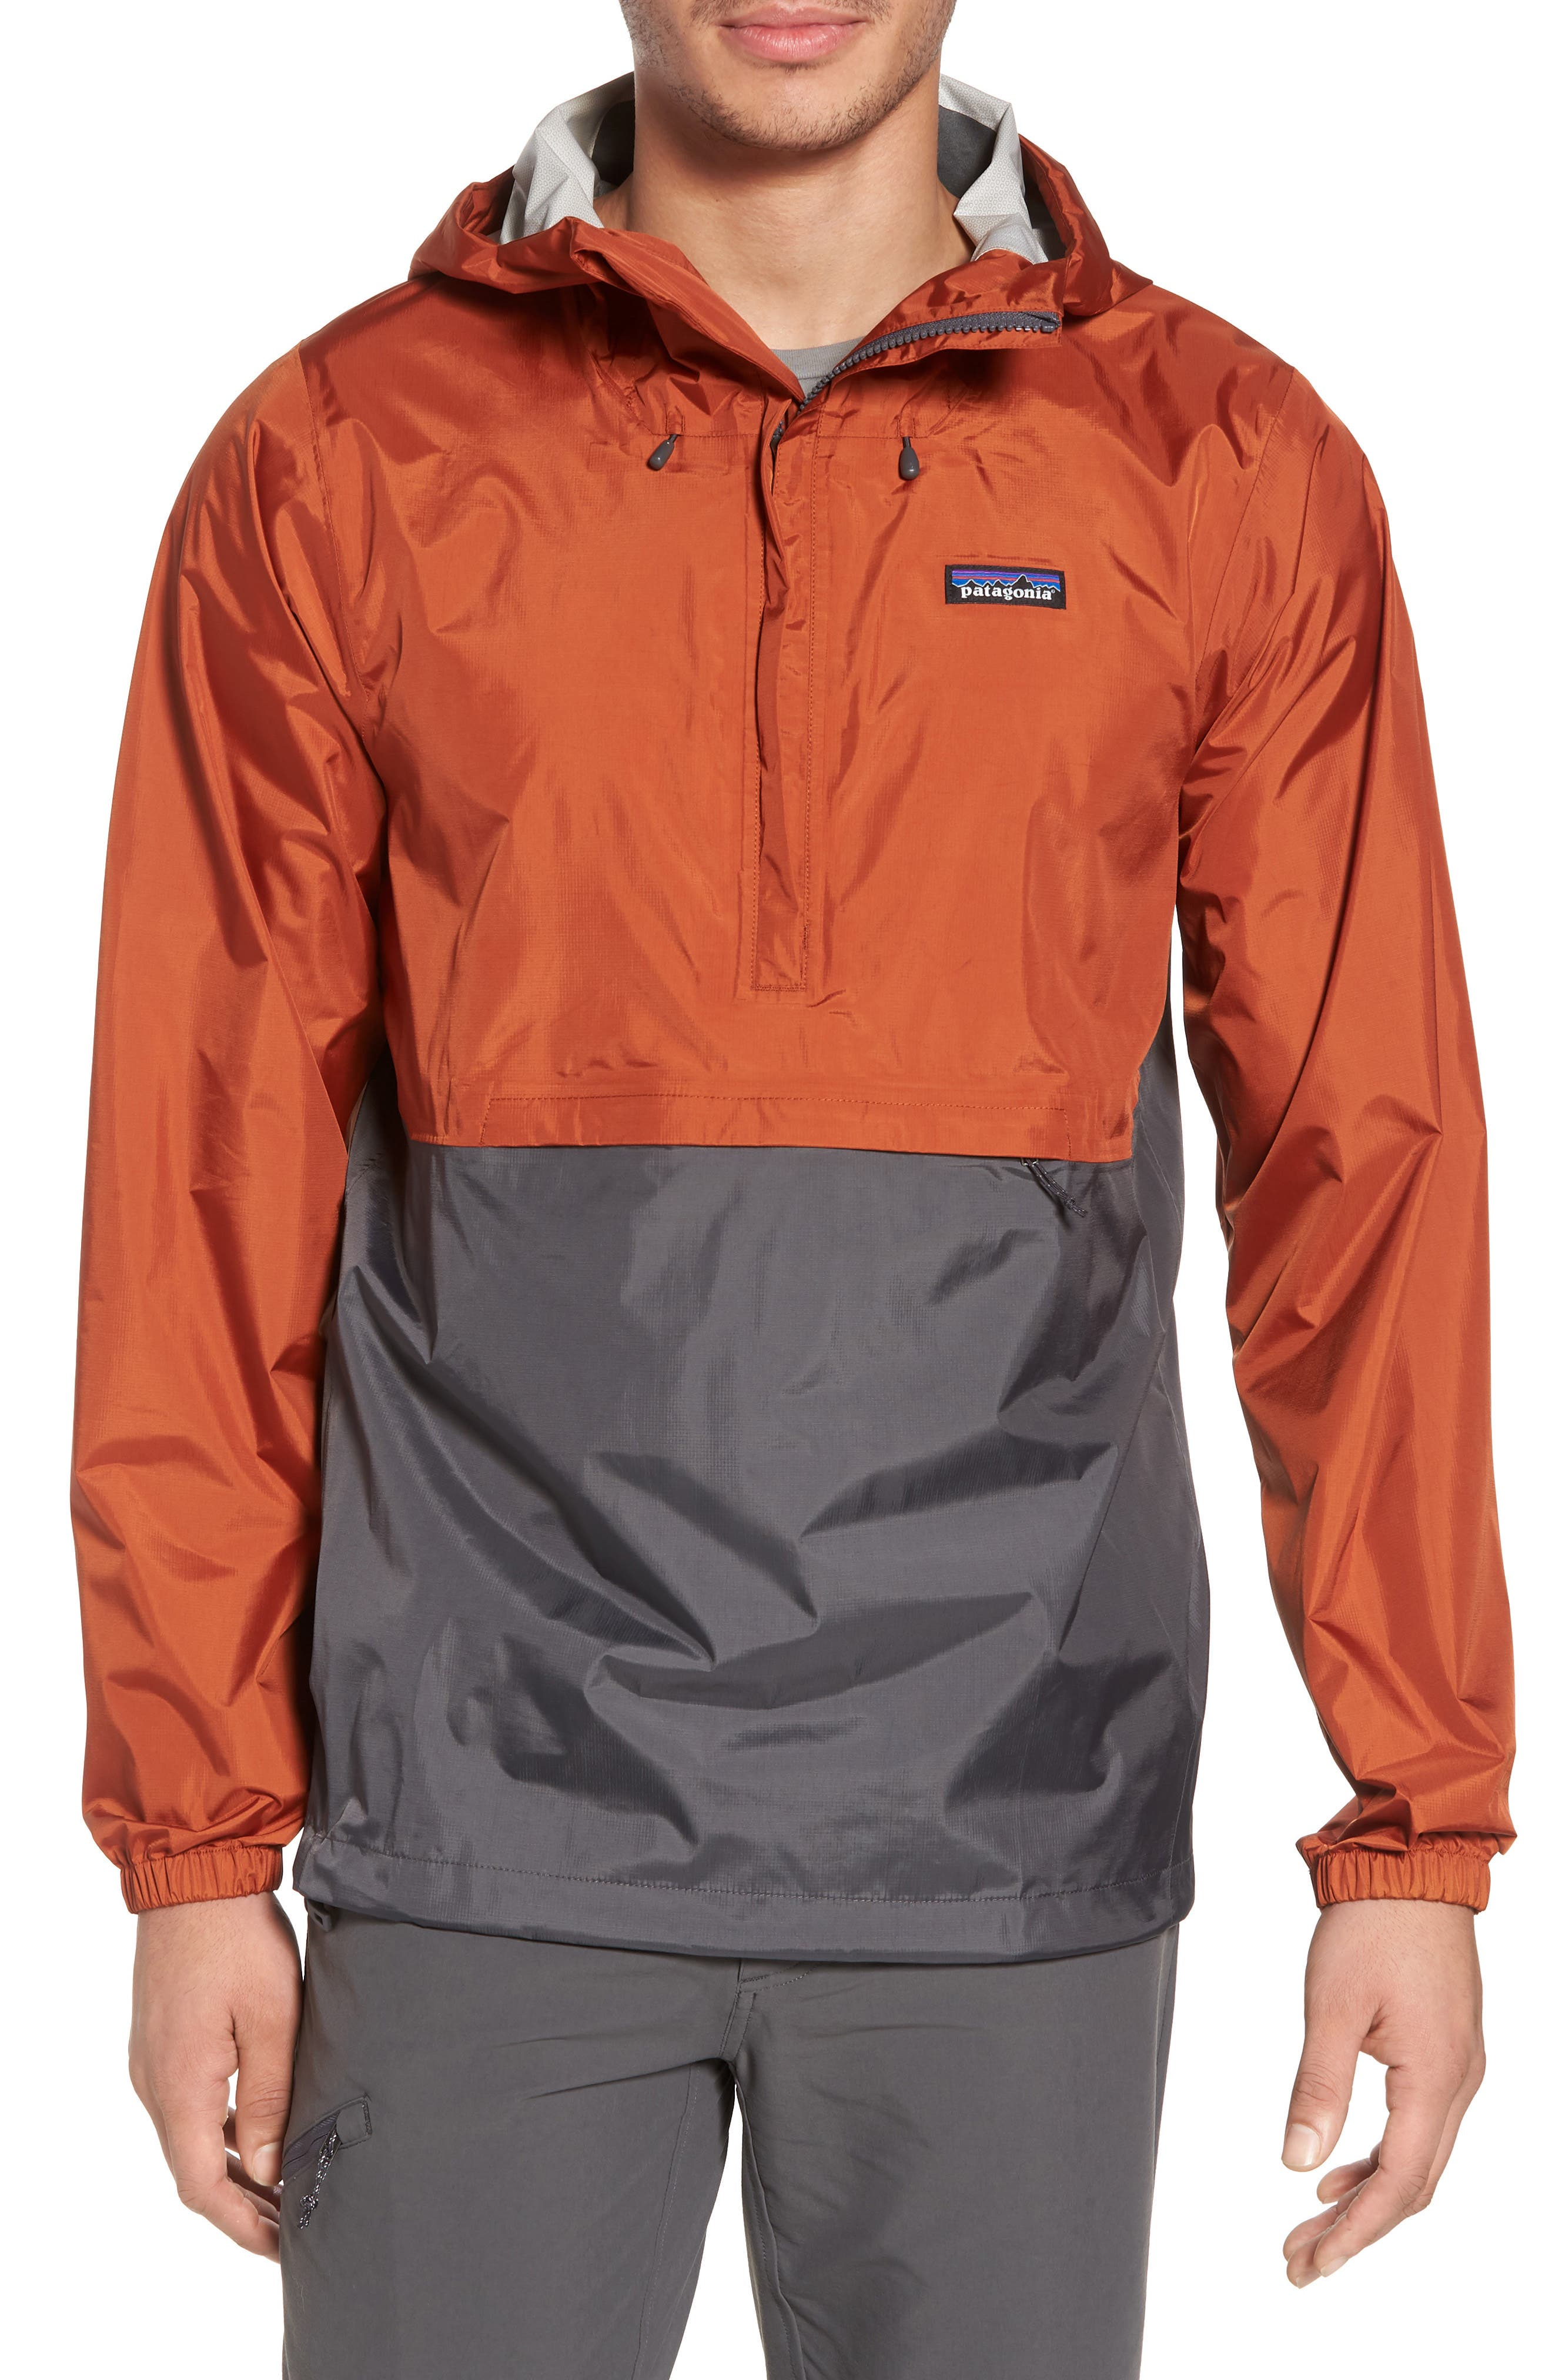 Alternate Image 1 Selected - Patagonia Torrentshell Packable Regular Fit Rain Jacket